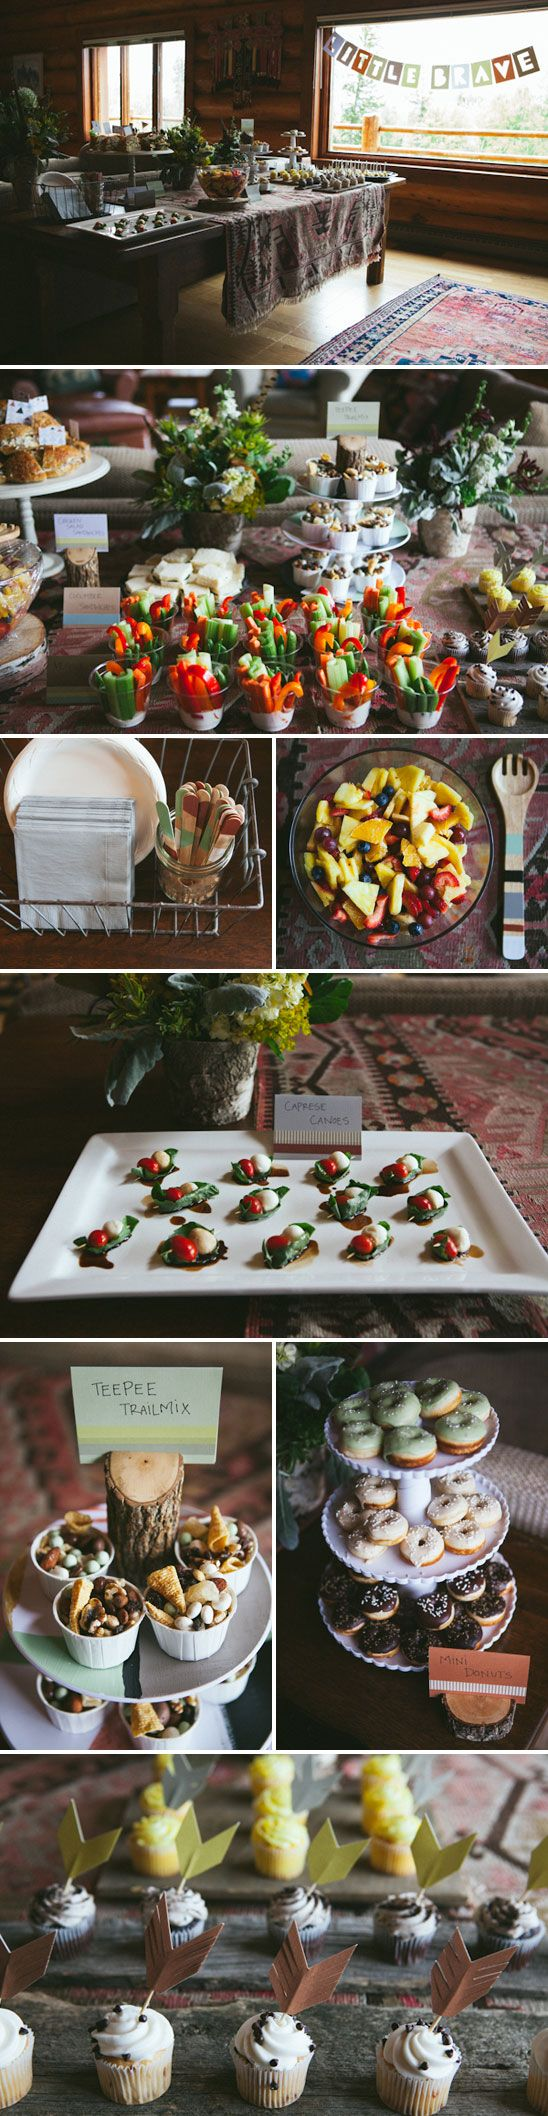 trail mix cups + basil tomato mozzarella bites @Susannah Wiksell (helen's shower):